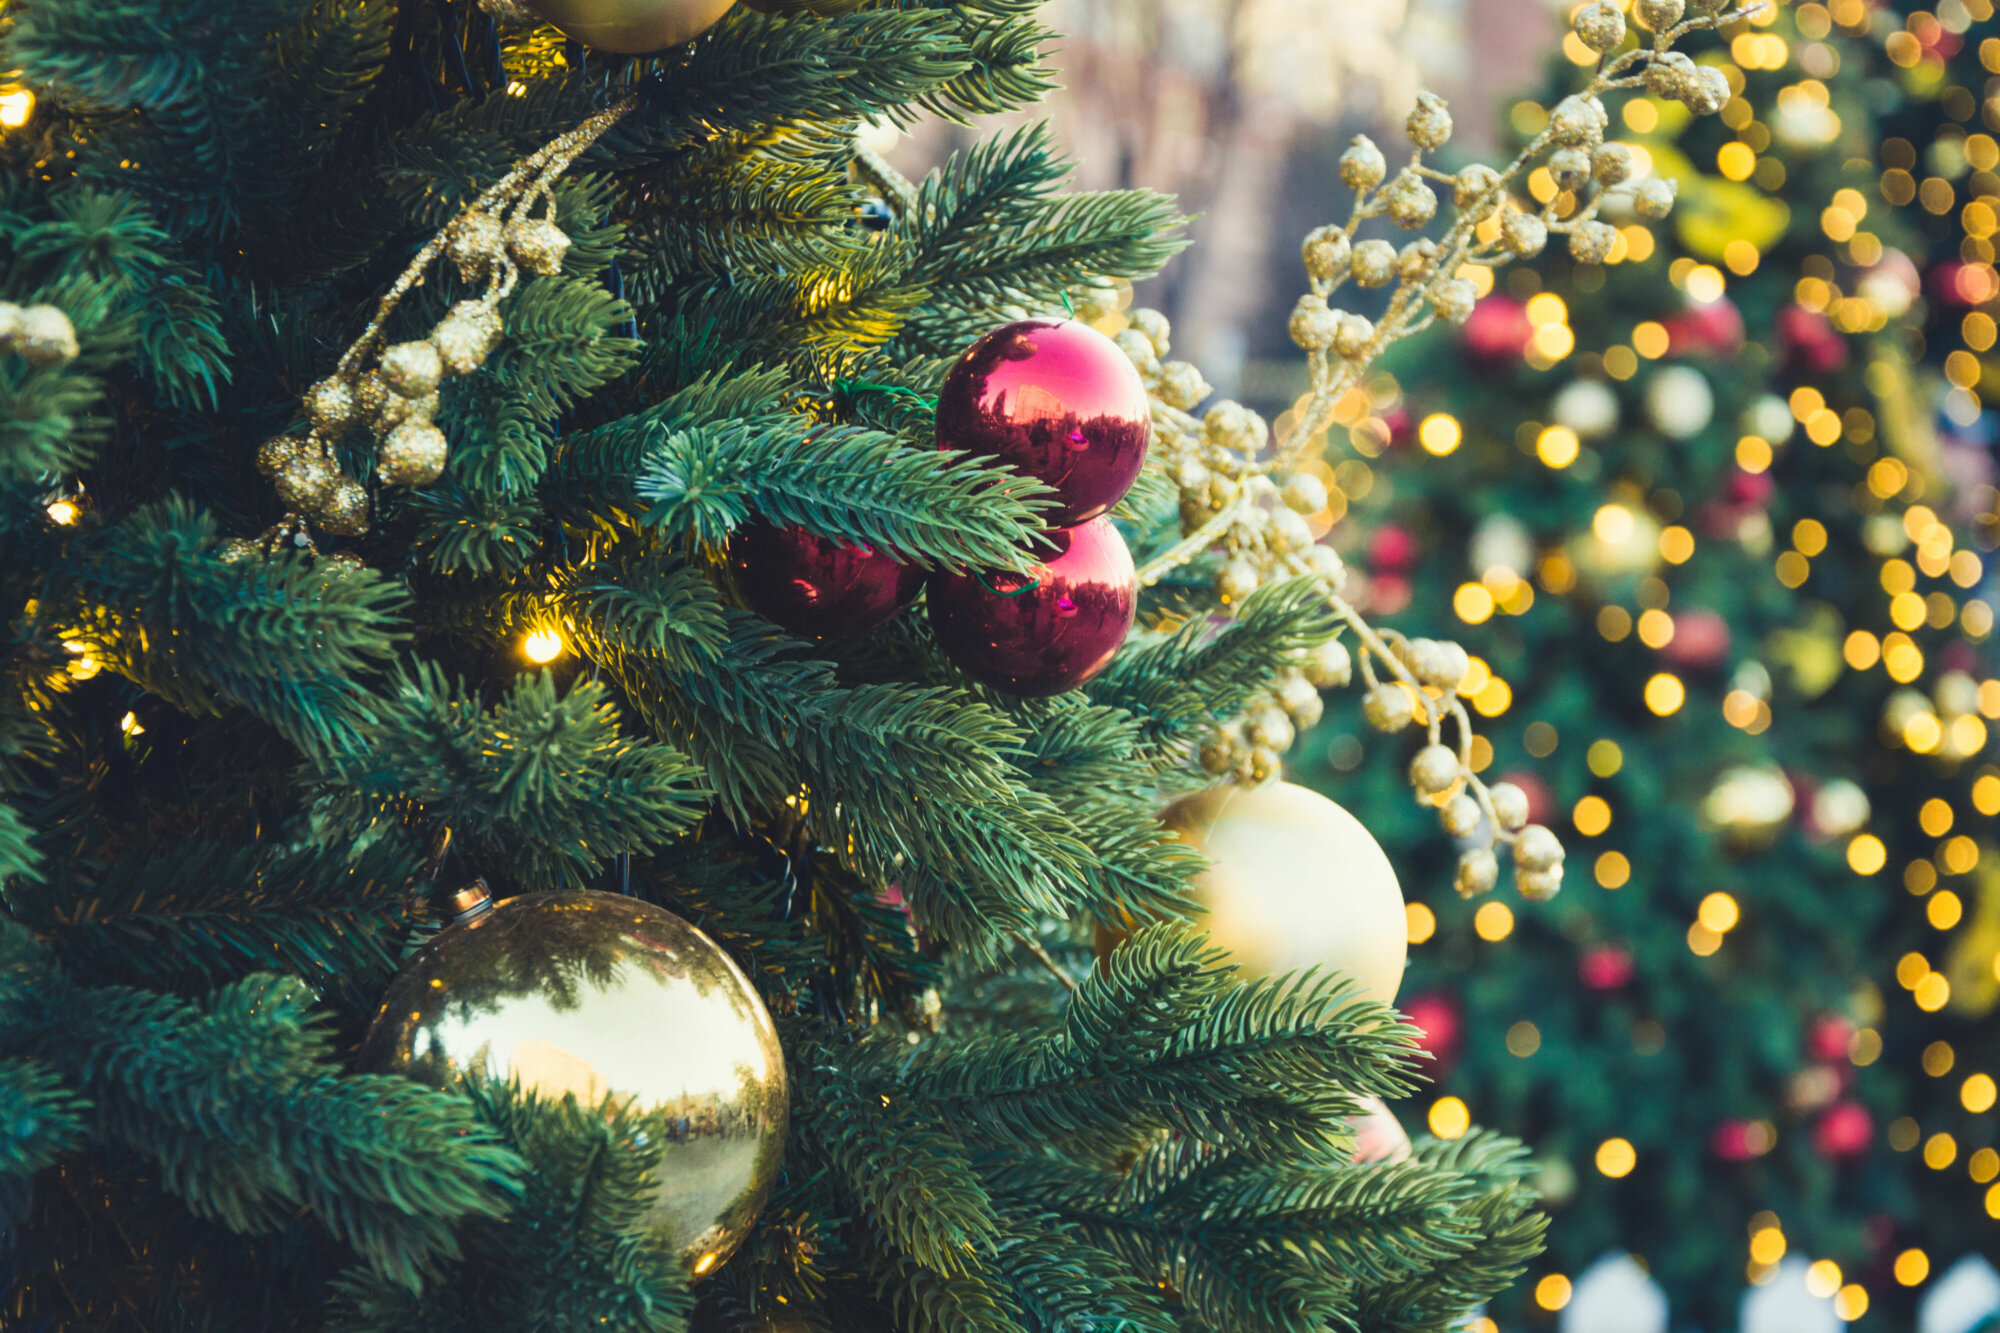 Howard County Christmas Tree Pickup 2020 How to dispose of your Christmas tree and holiday greenery in 2020